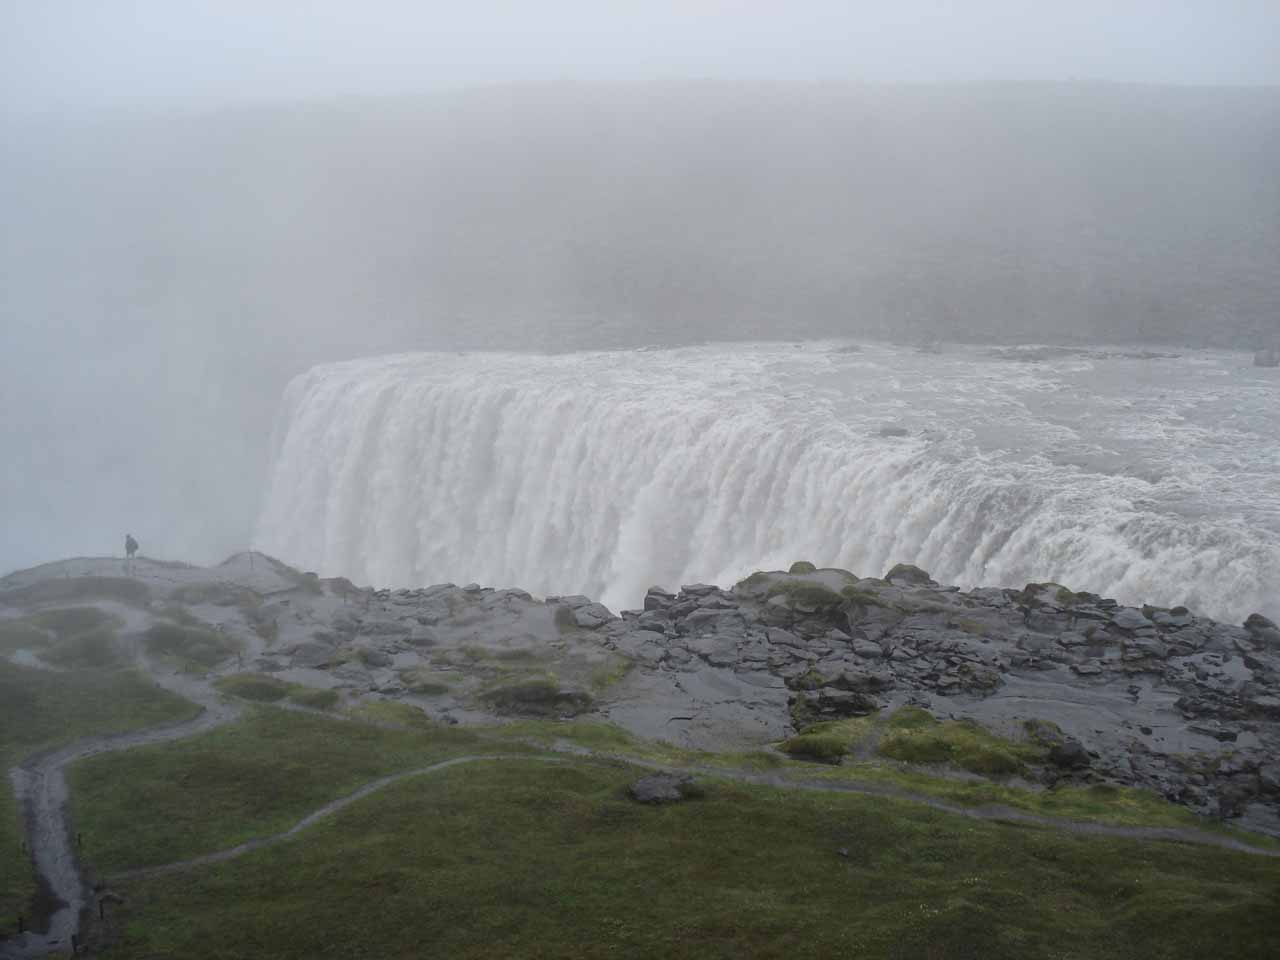 This was about as clear a photo we had of Dettifoss on this day